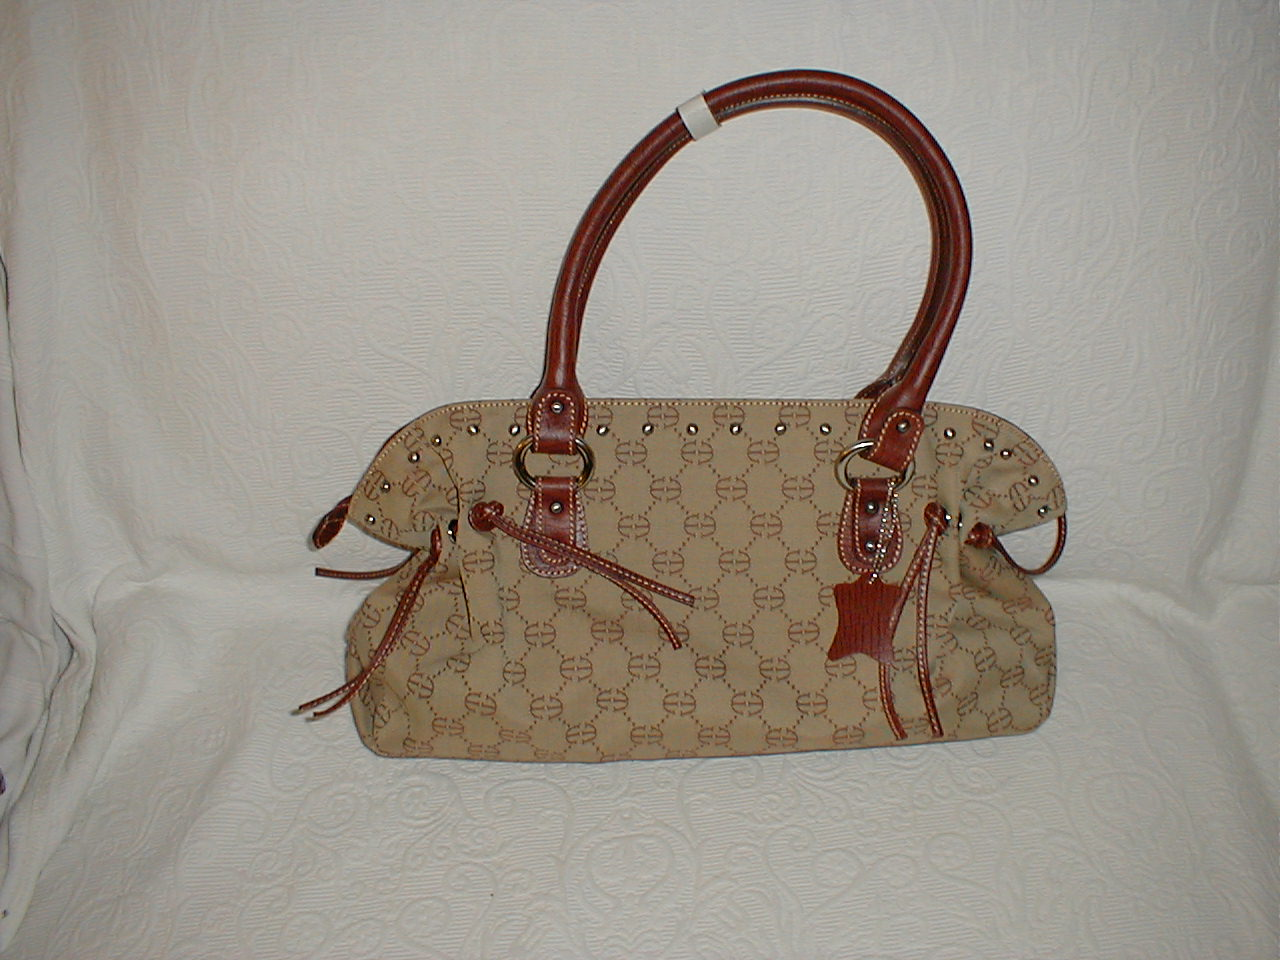 High Quality Synthetic handbags, Made in Italy